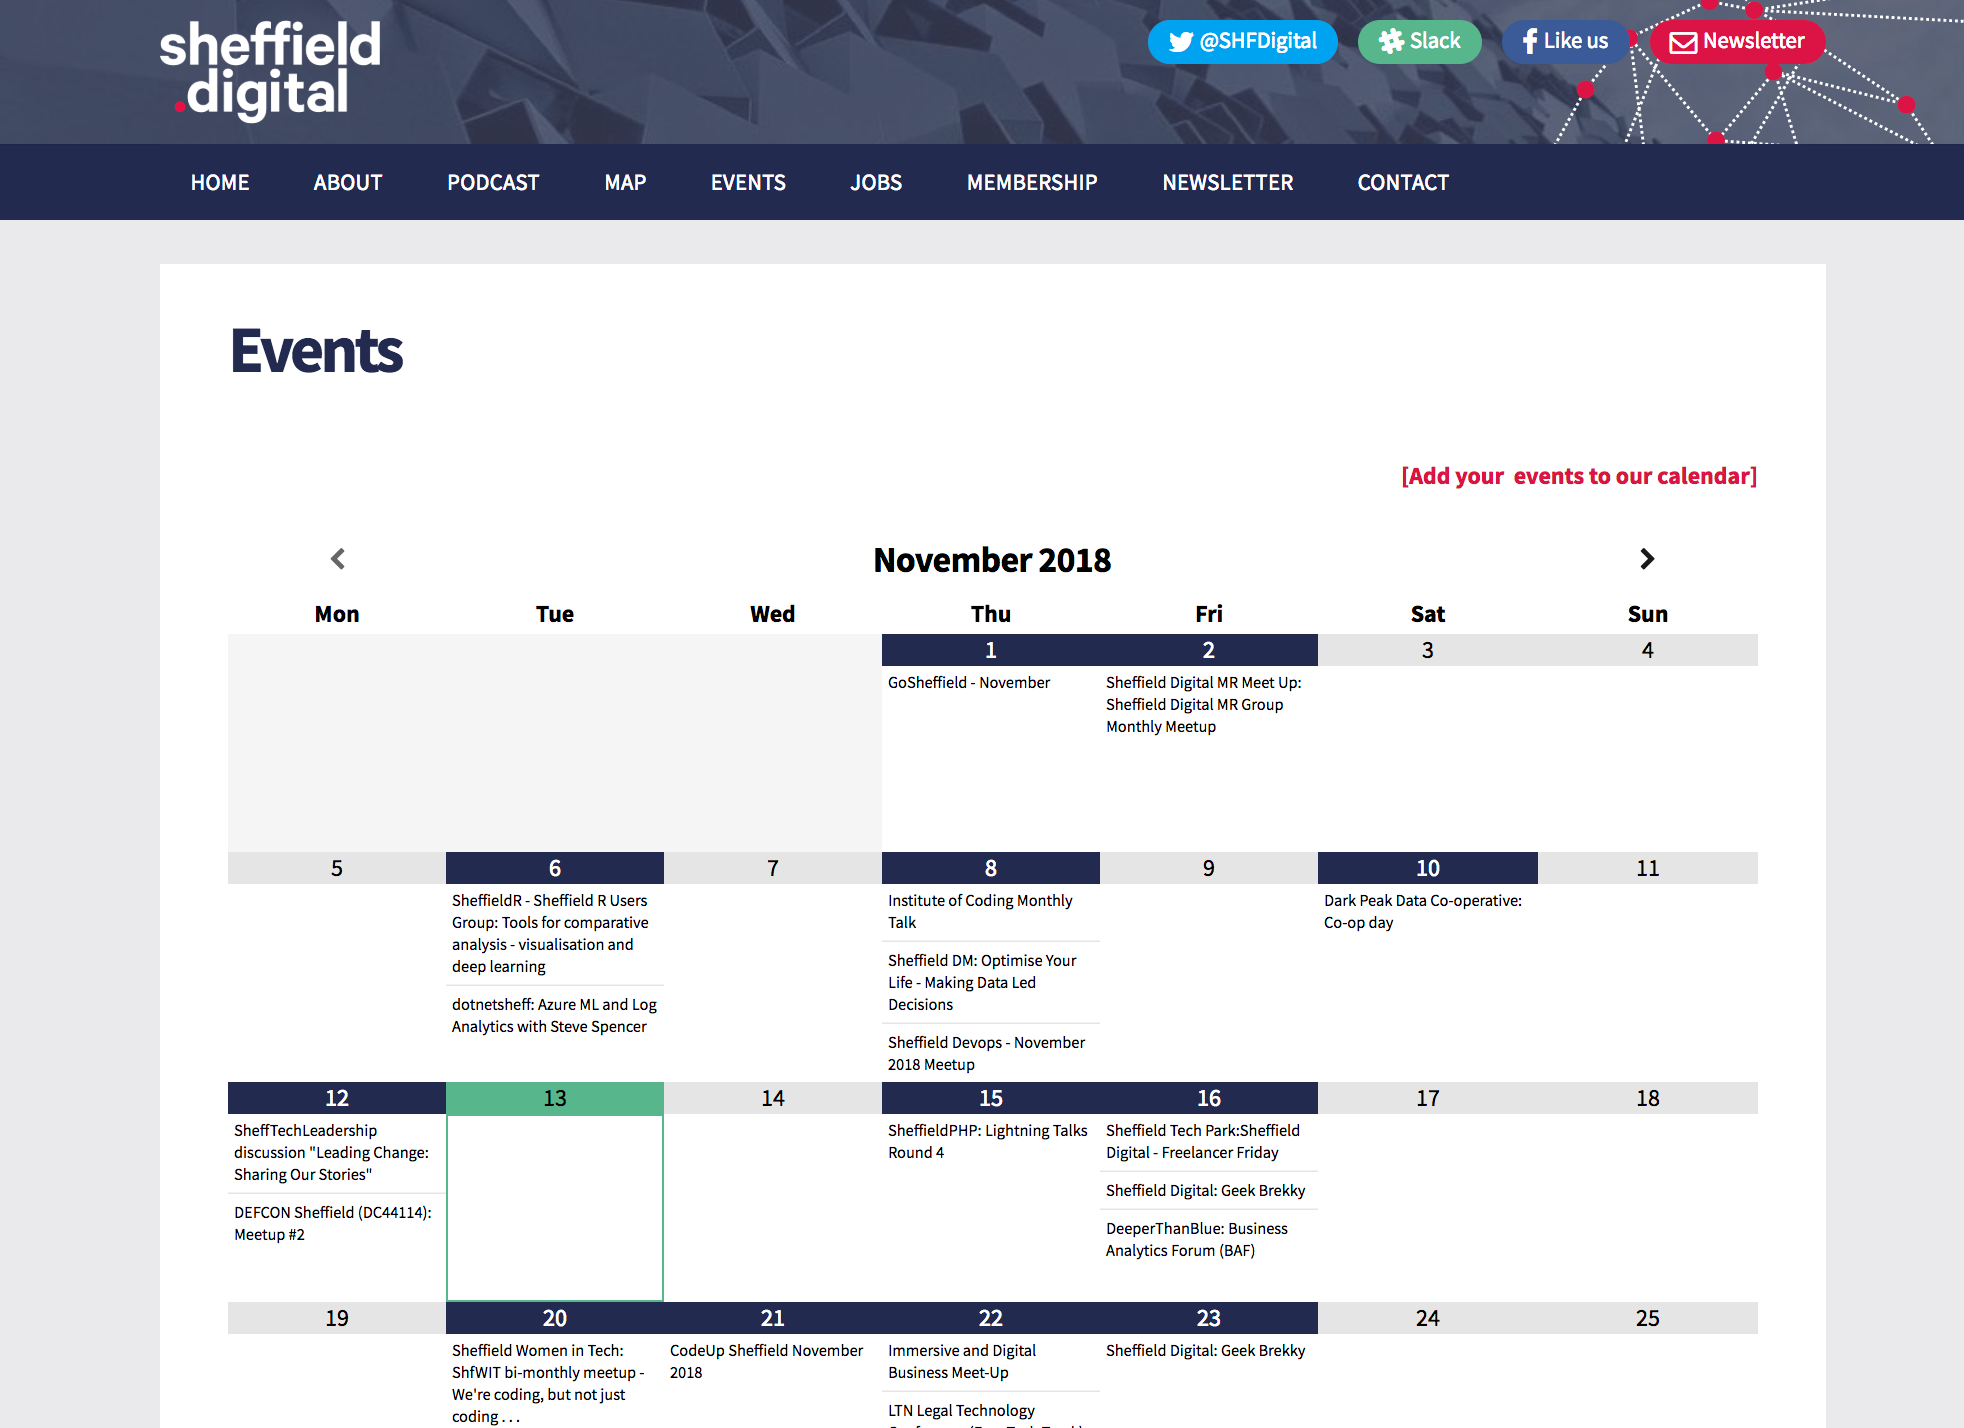 Sheffield Digital Events Calendar